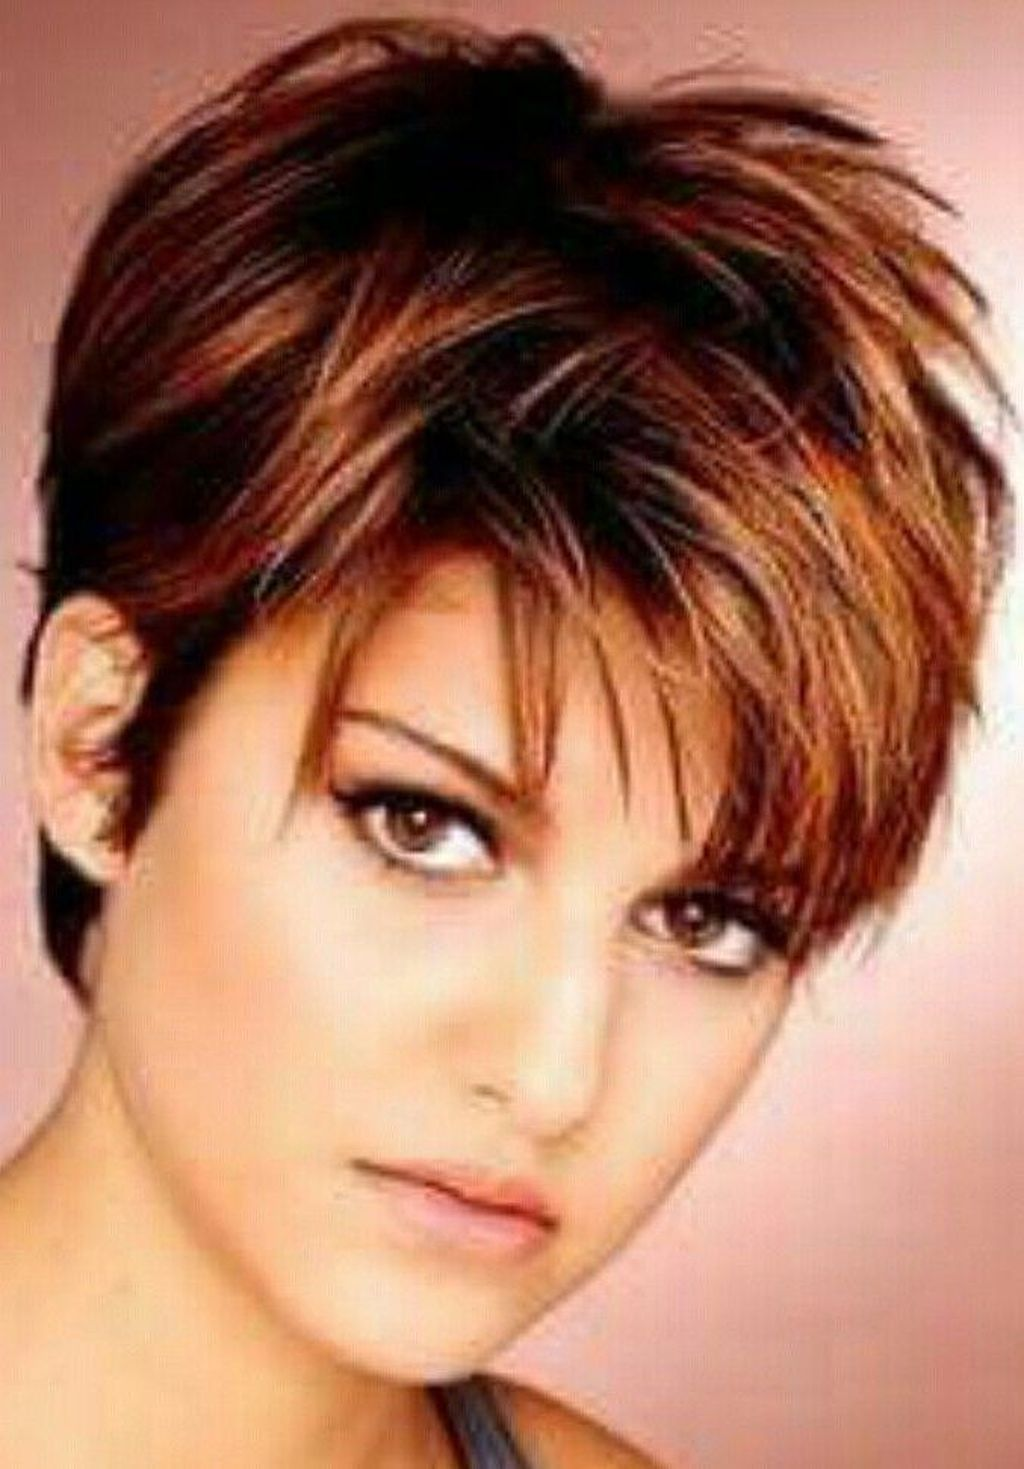 40 Adorable Short Hairstyle Ideas For Women With Round Face Shapes Womens Hairstyles Short Hairstyles For Women Thin Fine Hair